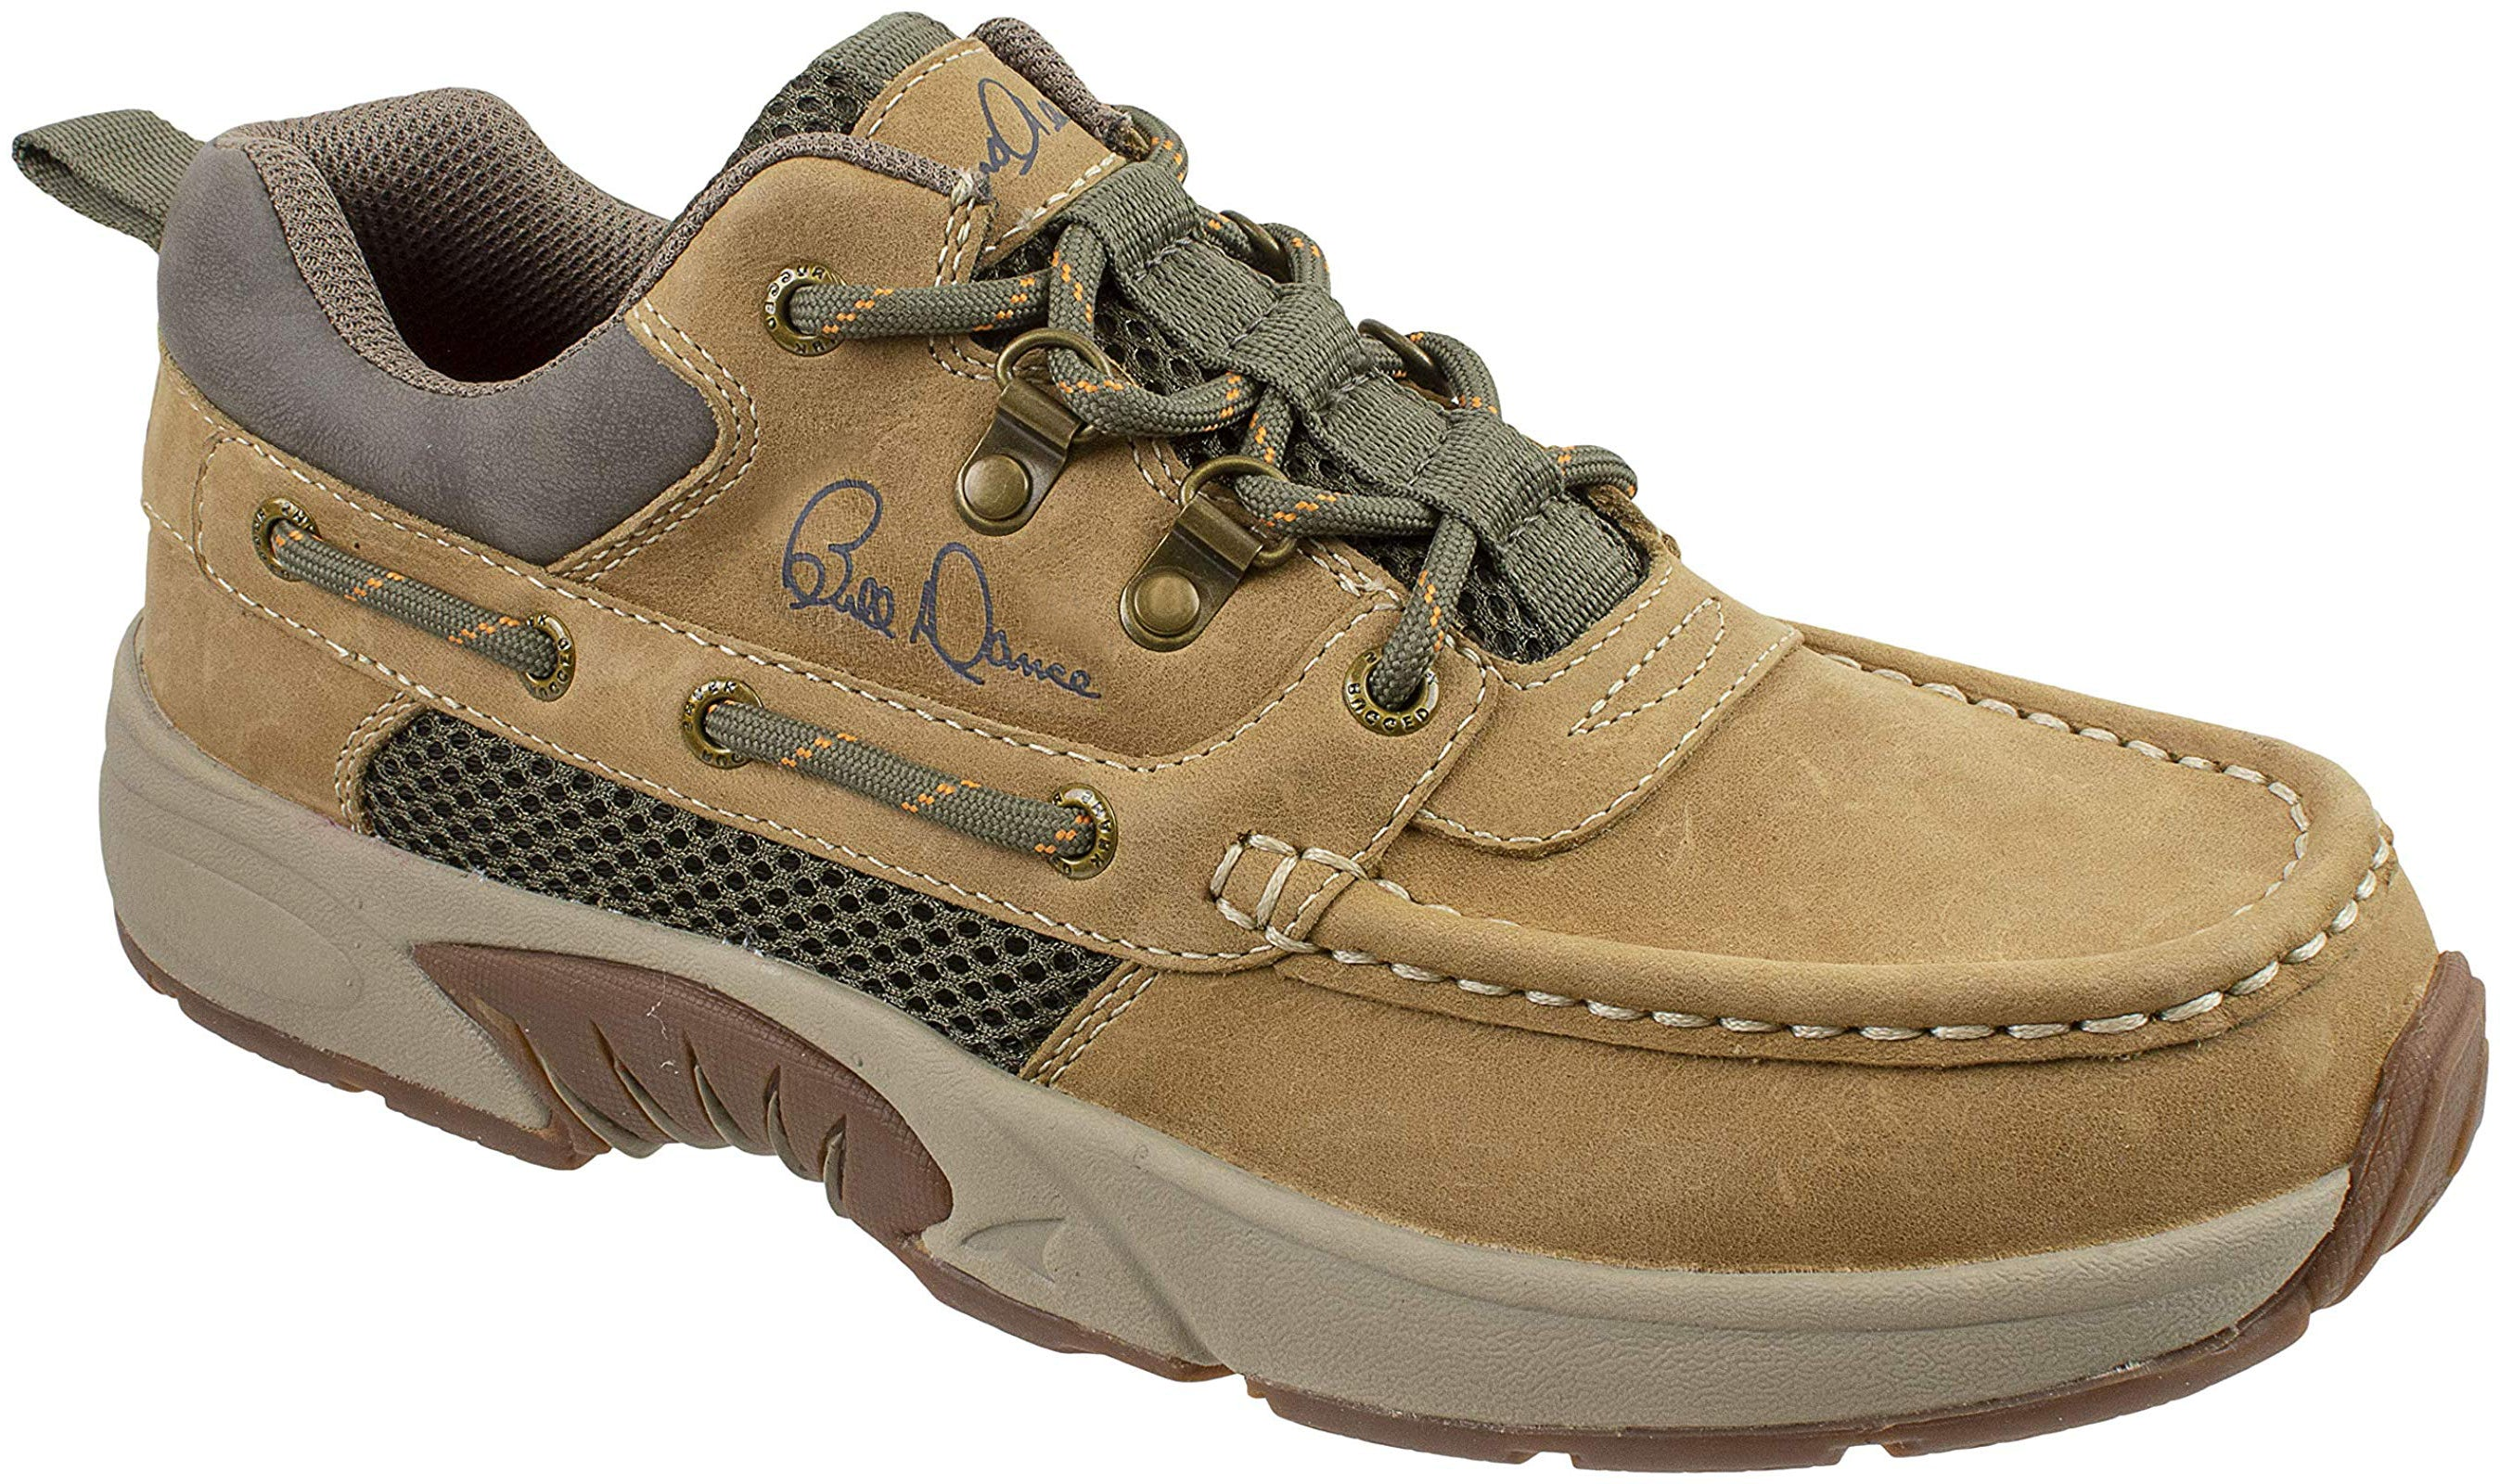 BILL DANCE PRO BOAT SHOE